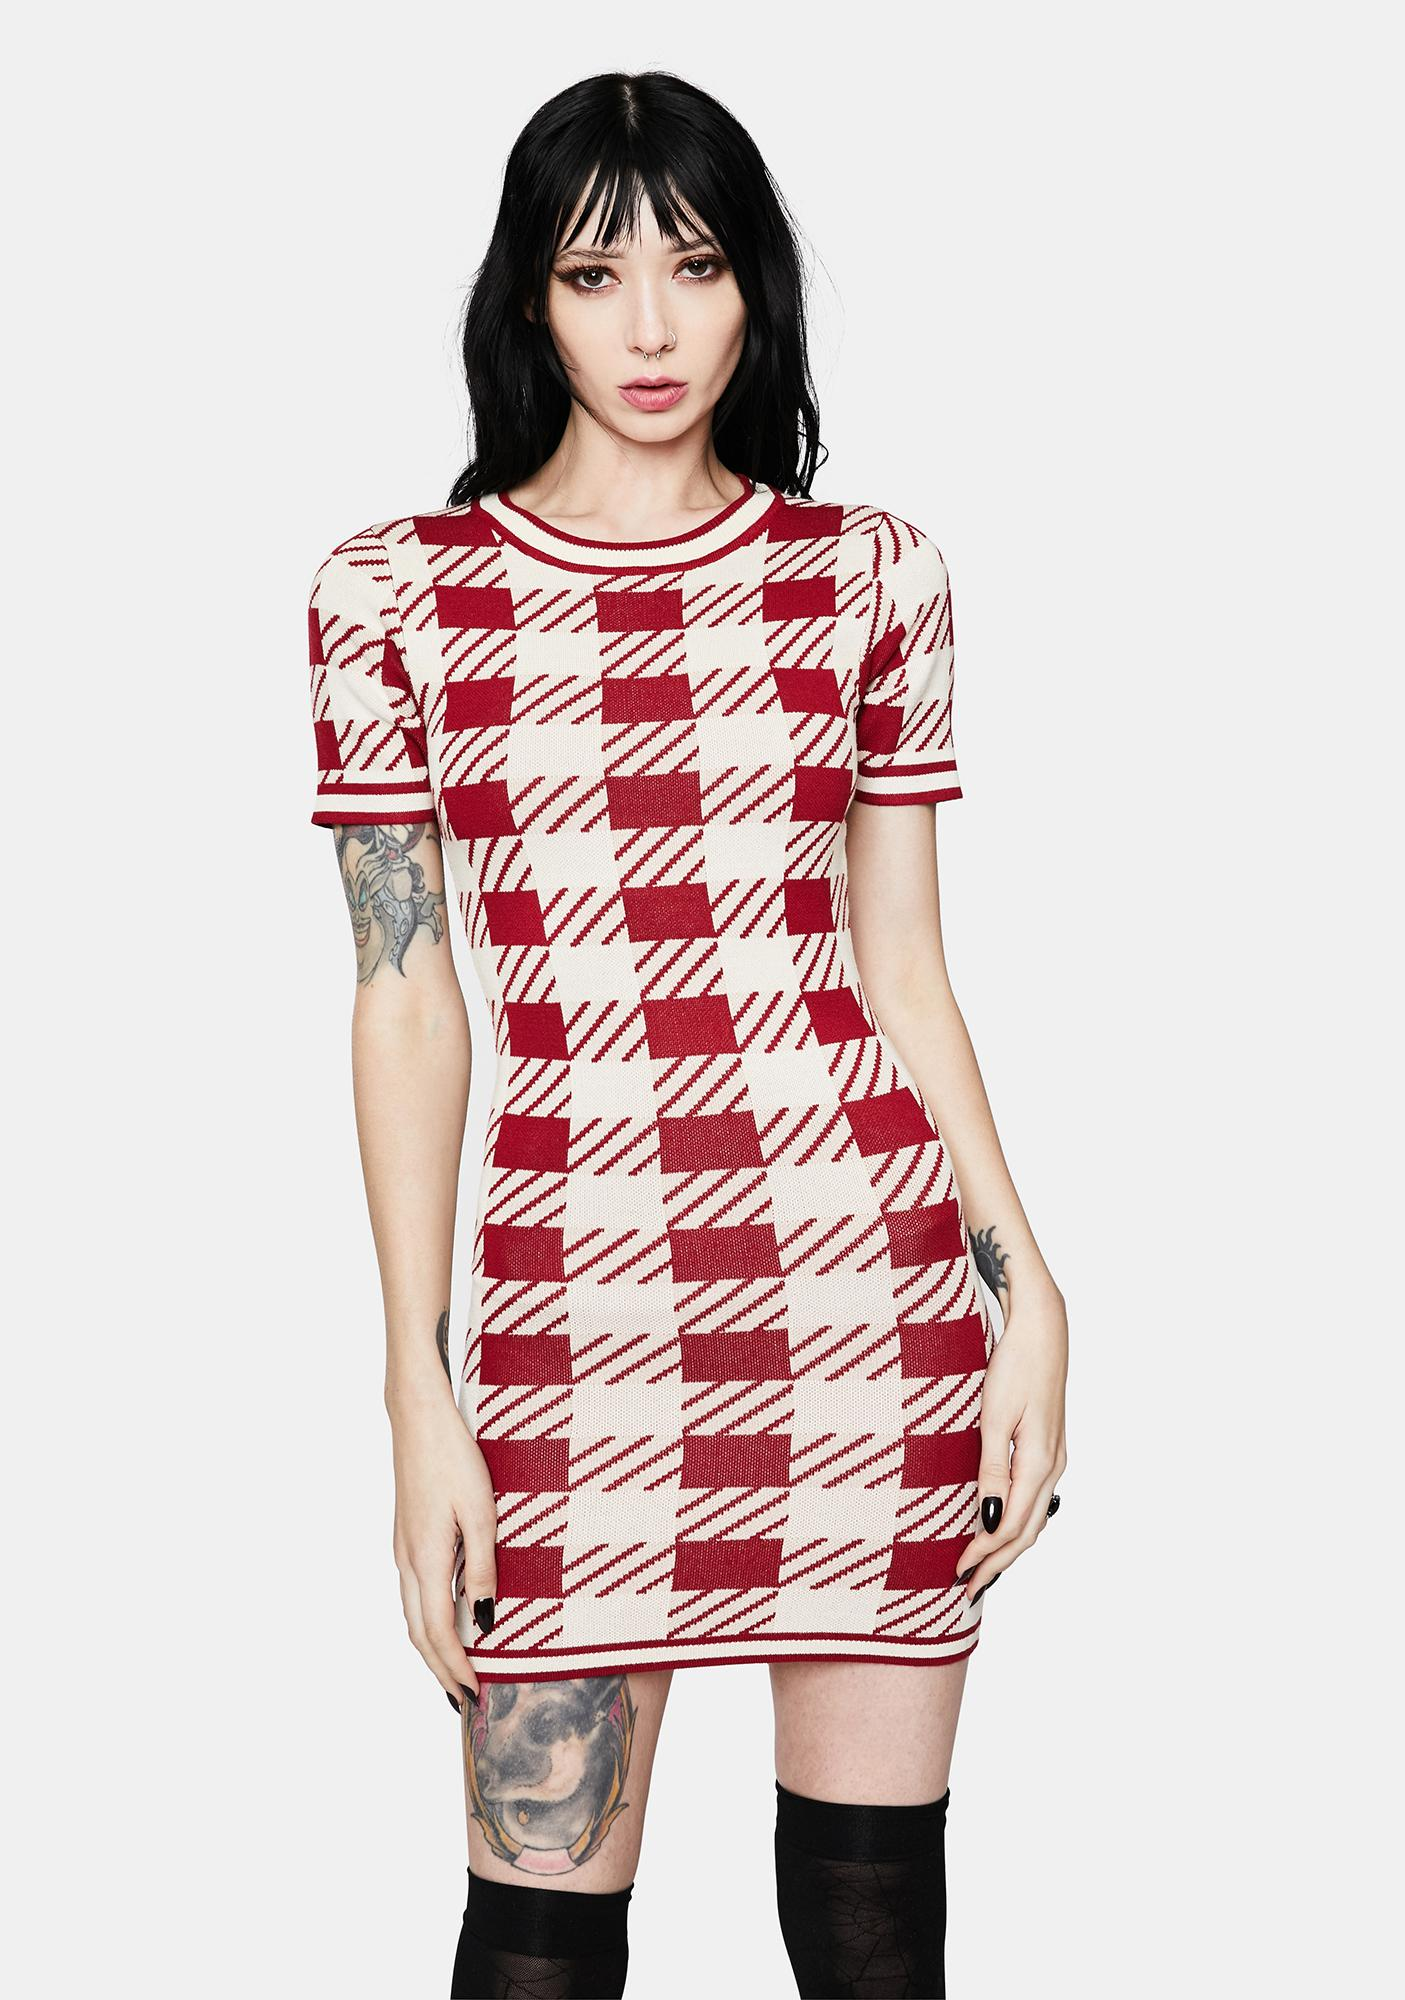 Scarlet Casually Fab Sweater Dress